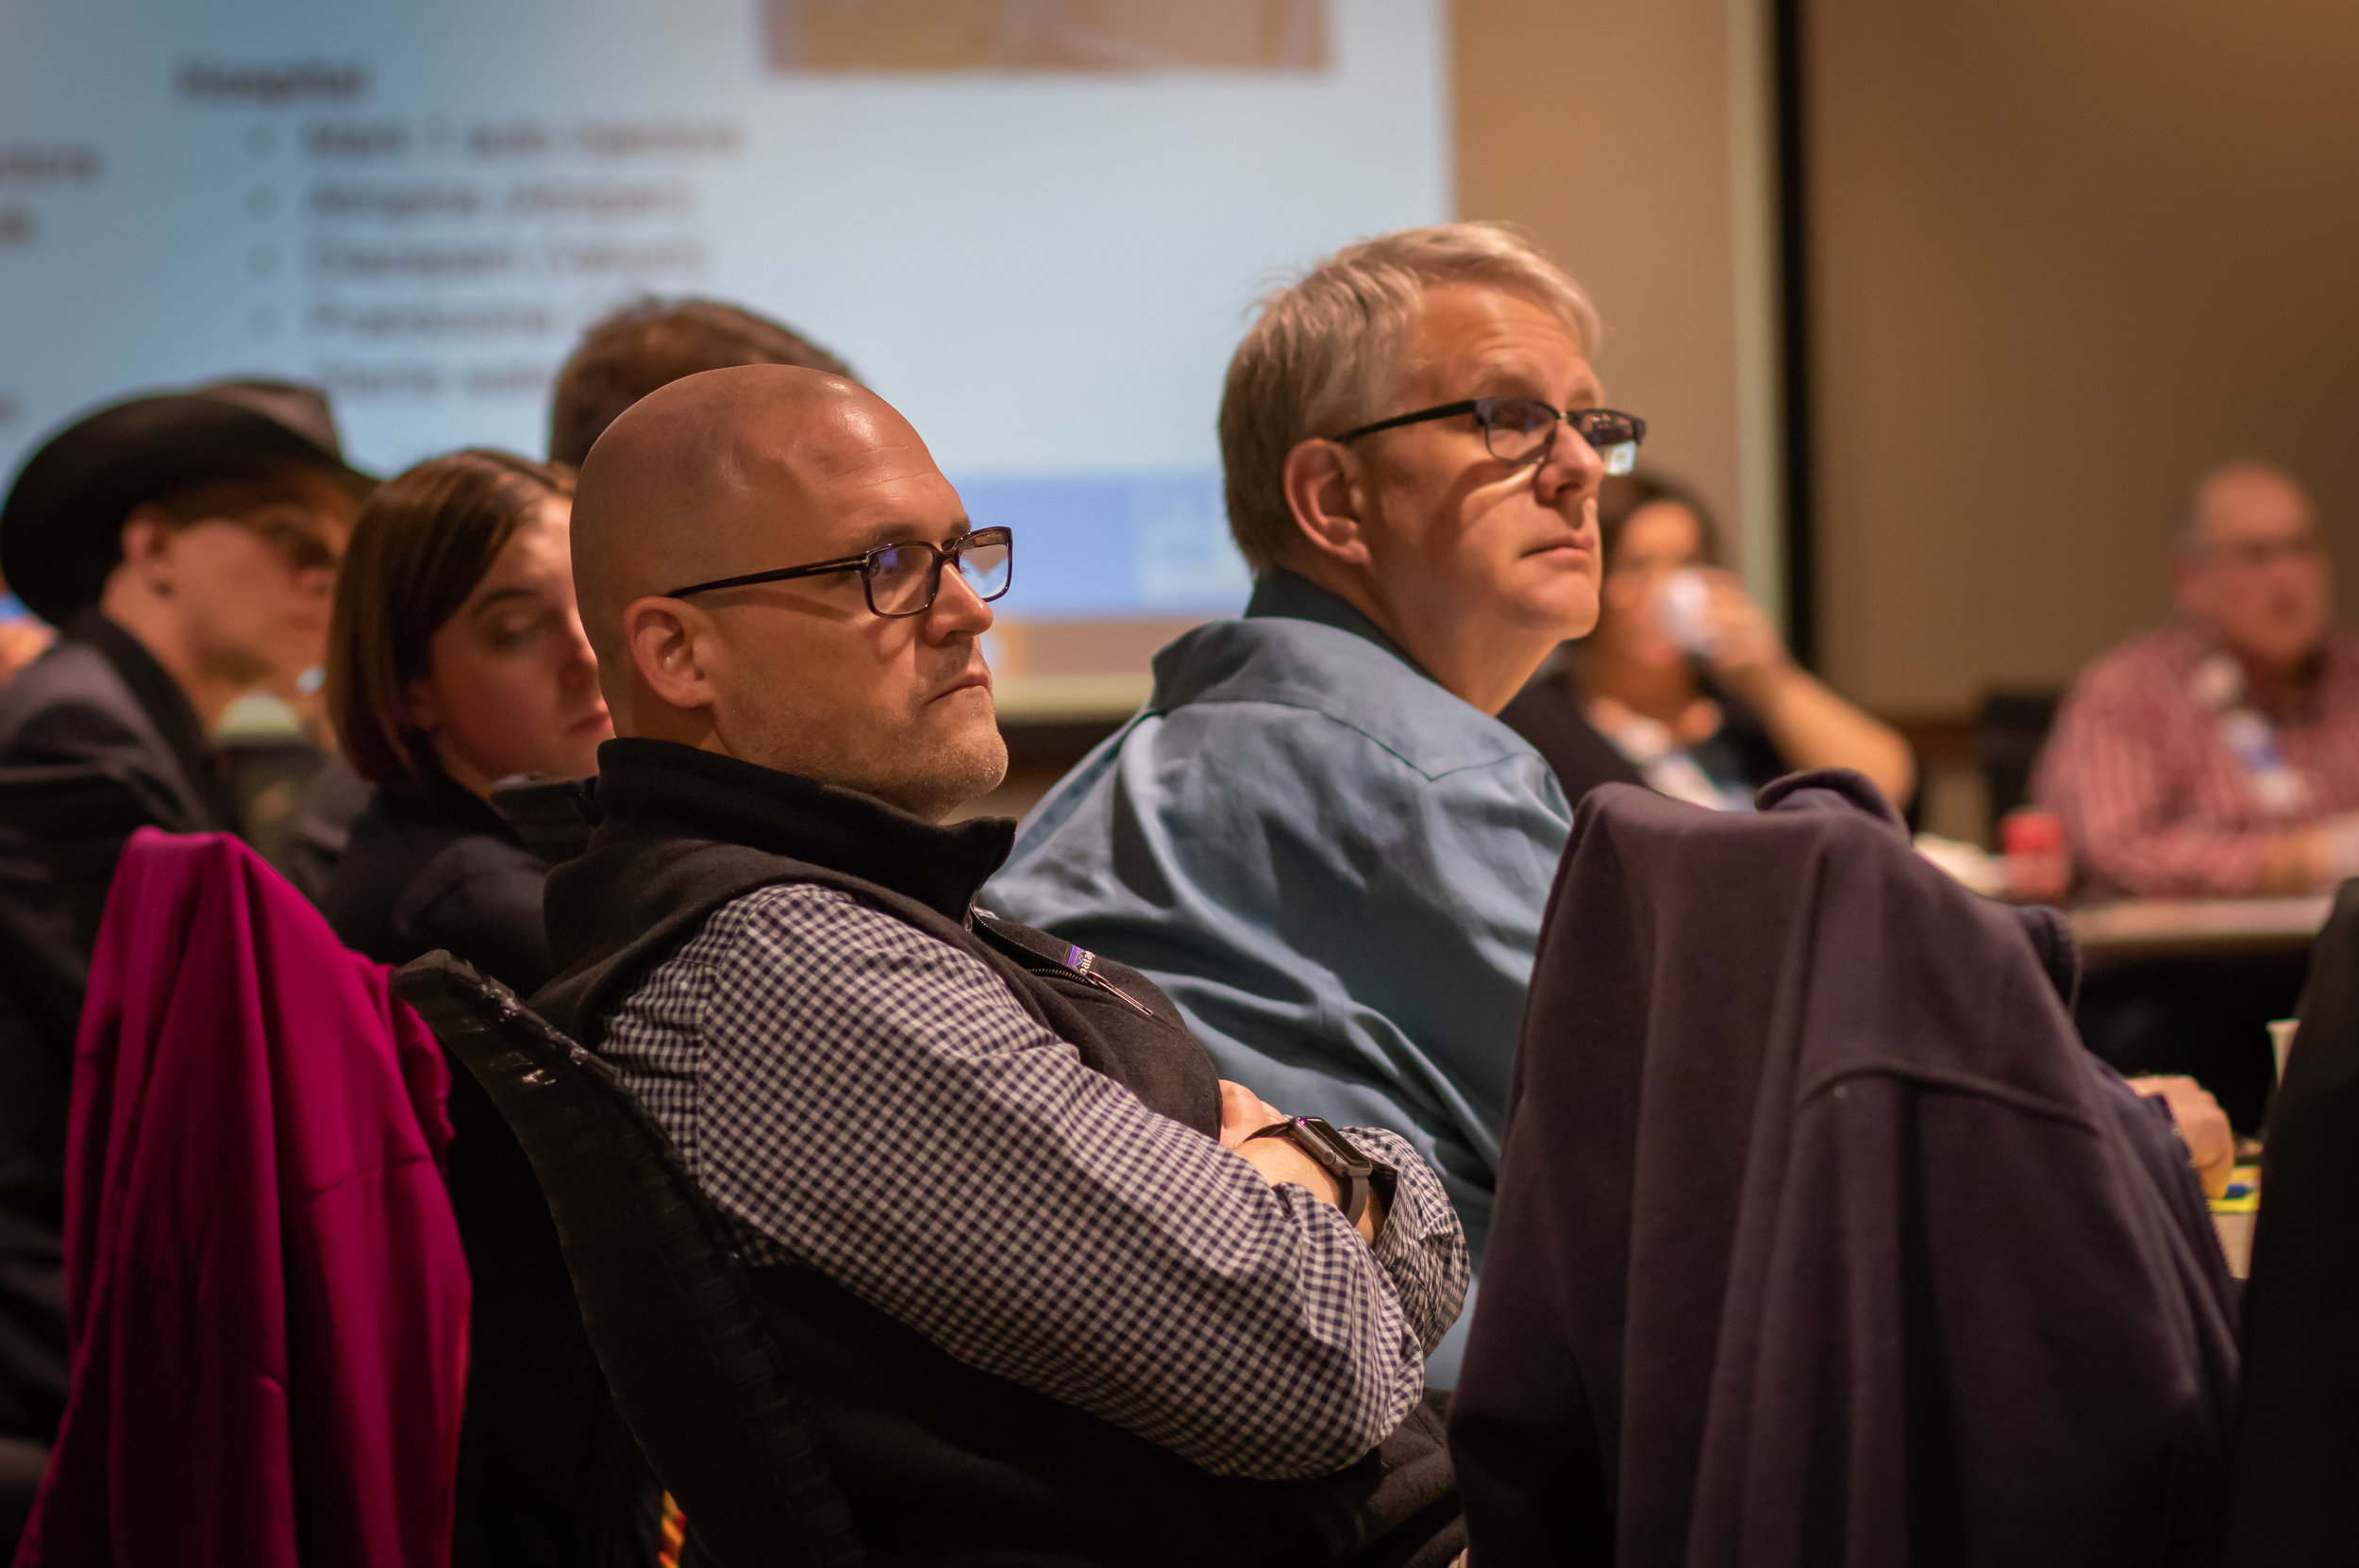 Participants of COTS Medical Countermeasures SNS training listen intently